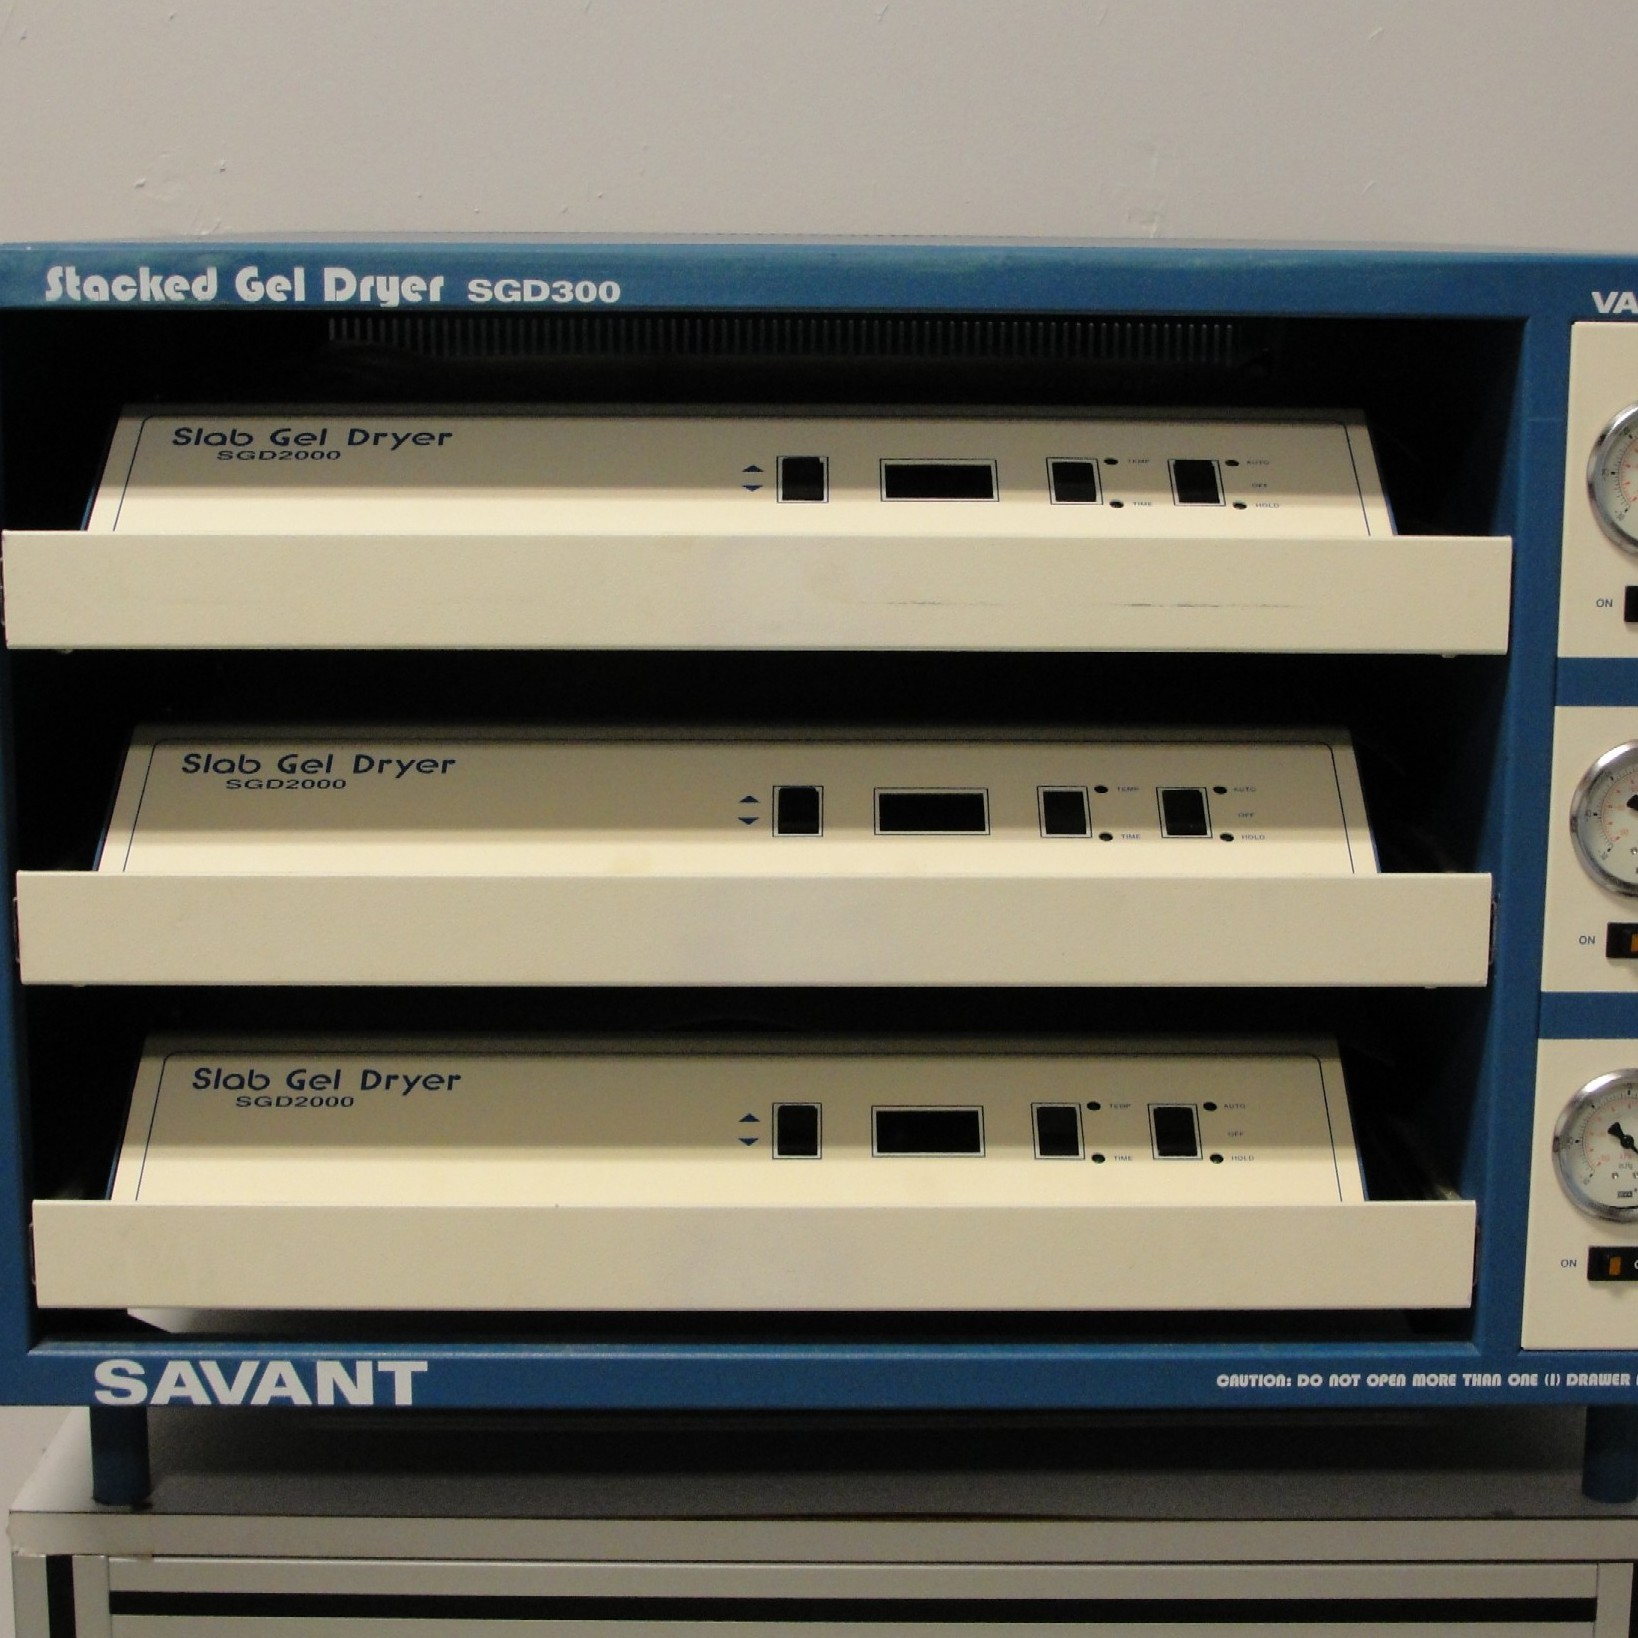 Savant SGD 300 Stacker Gel Dryer Image